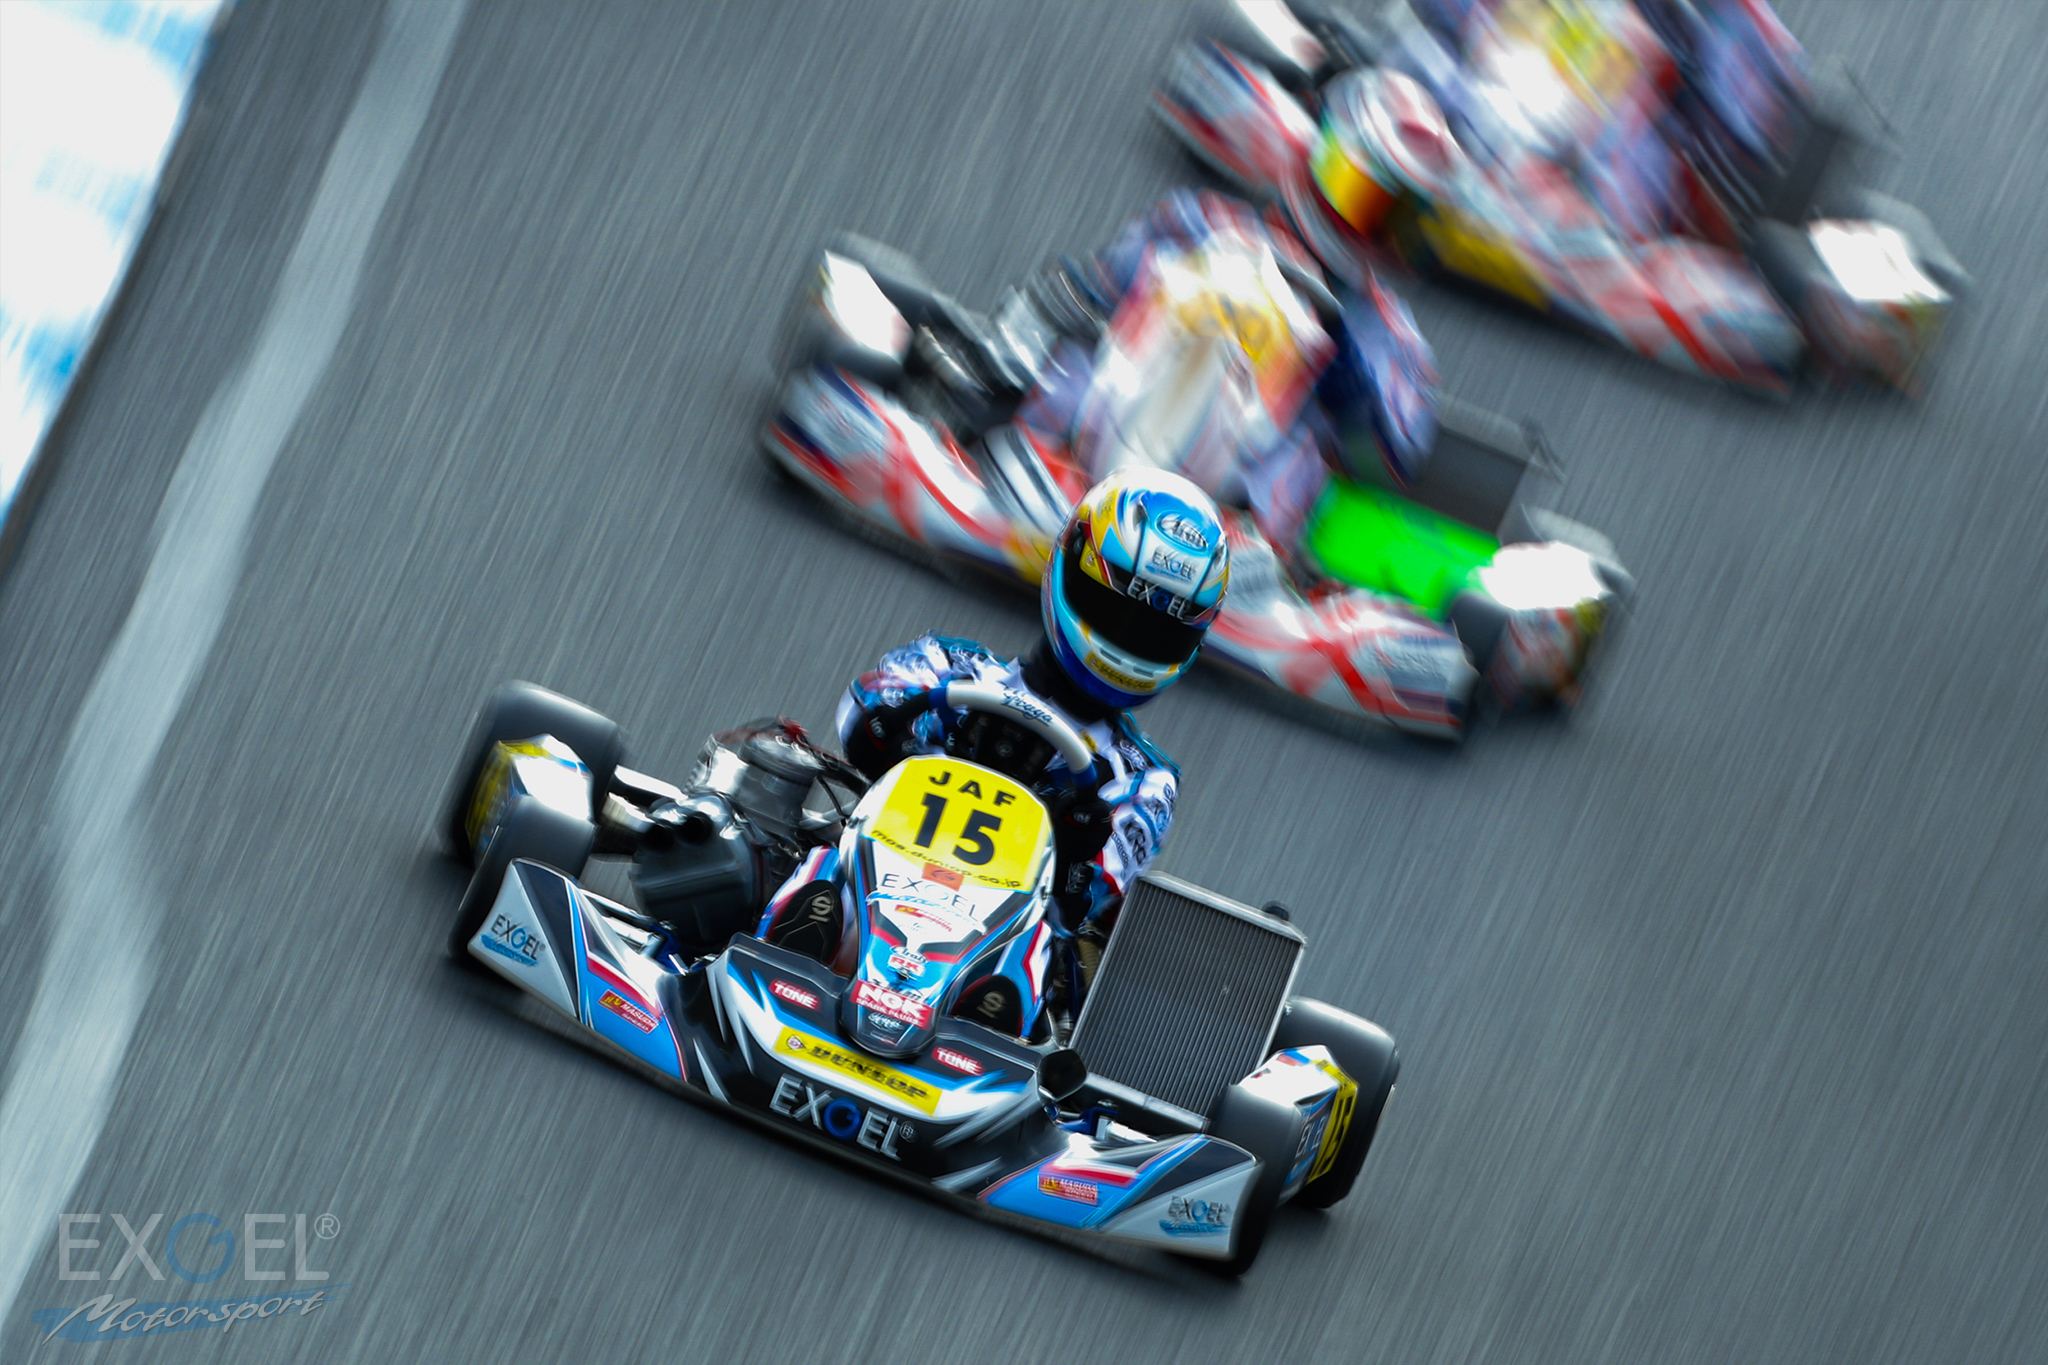 EXGEL MOTORSPORT